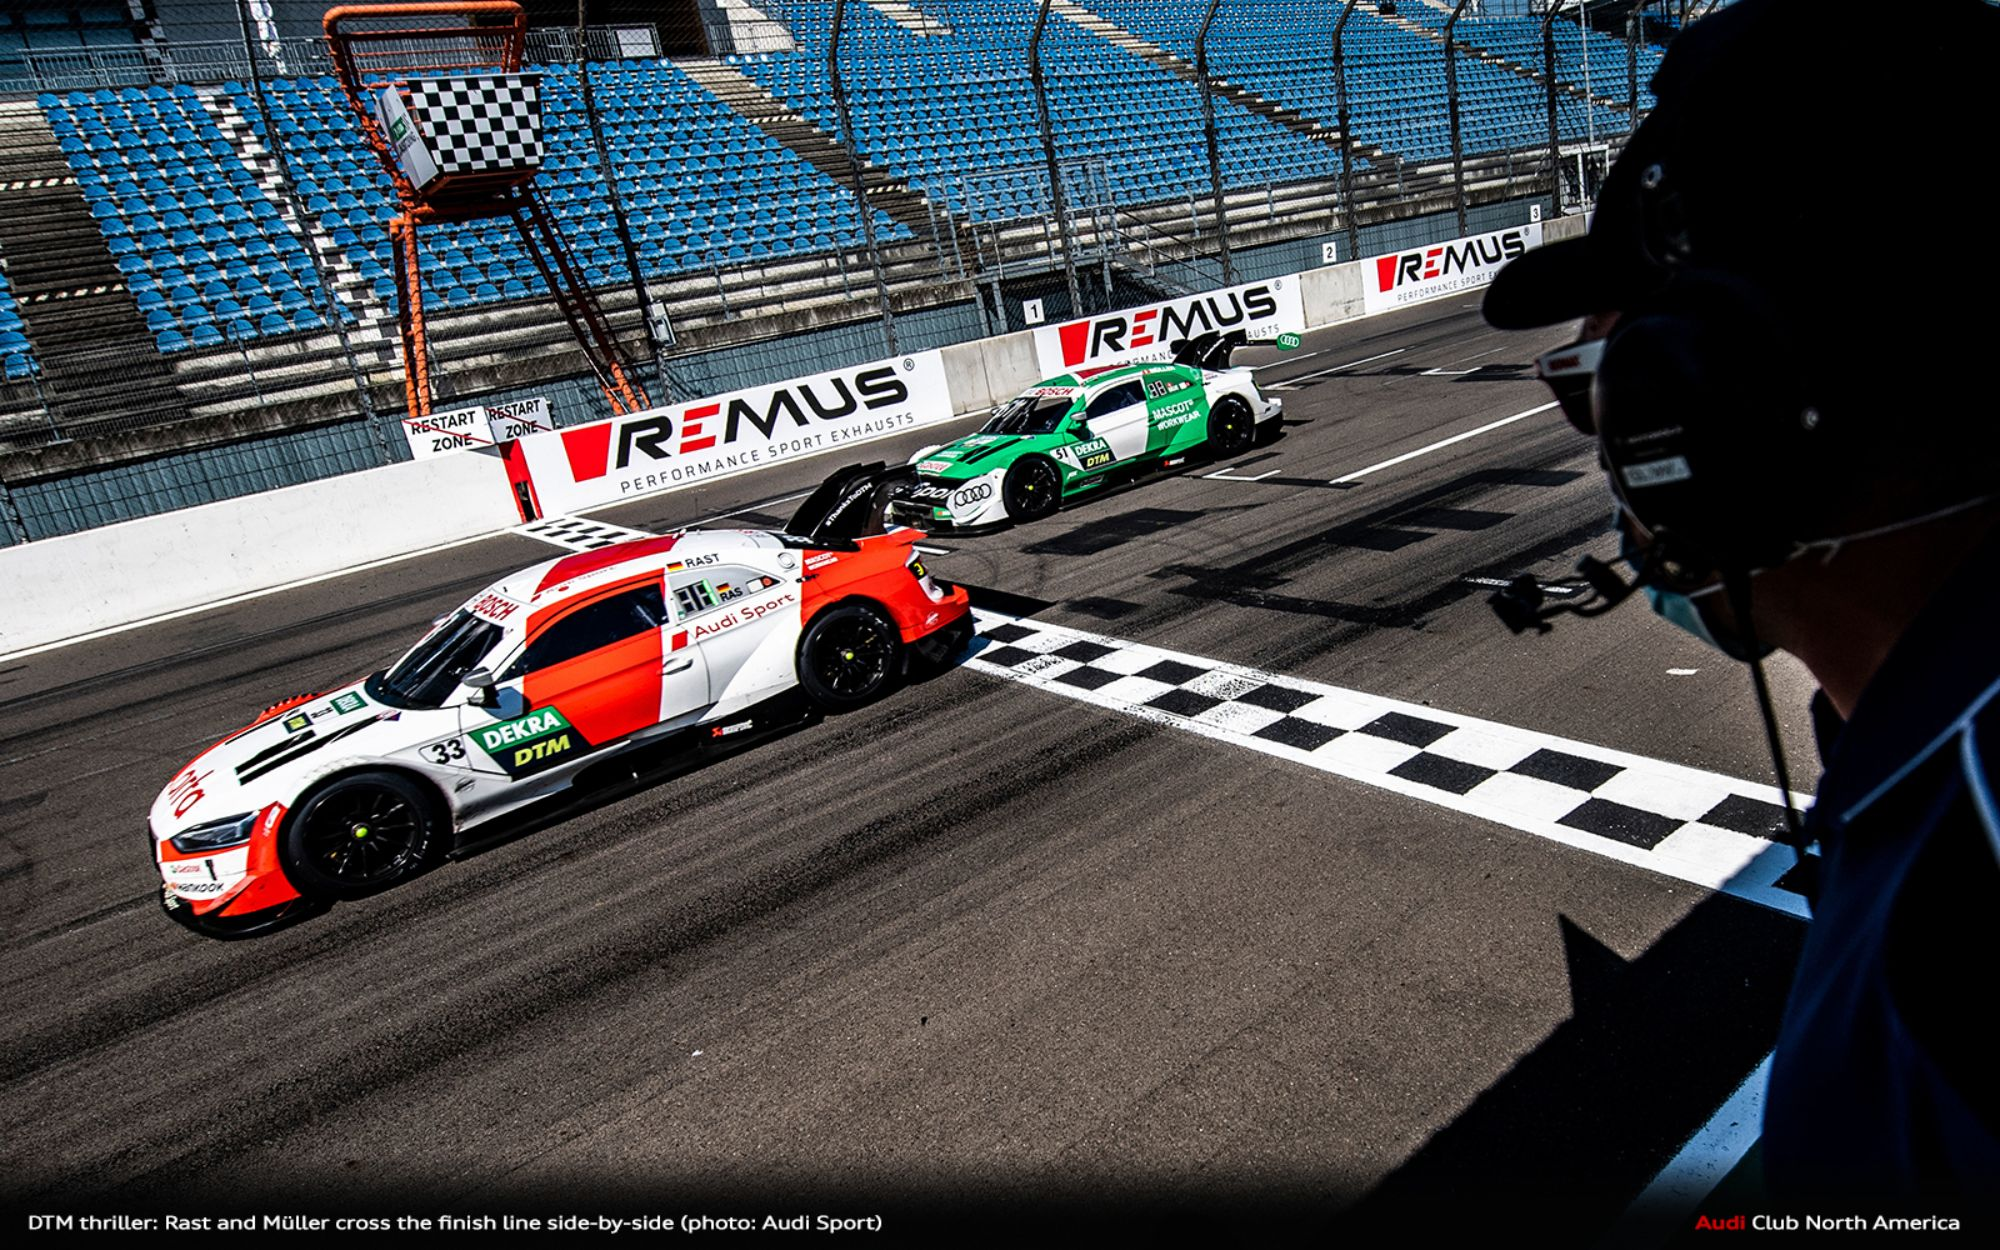 DTM Thriller: Rast and Müller Cross the Finish Line Side-By-Side